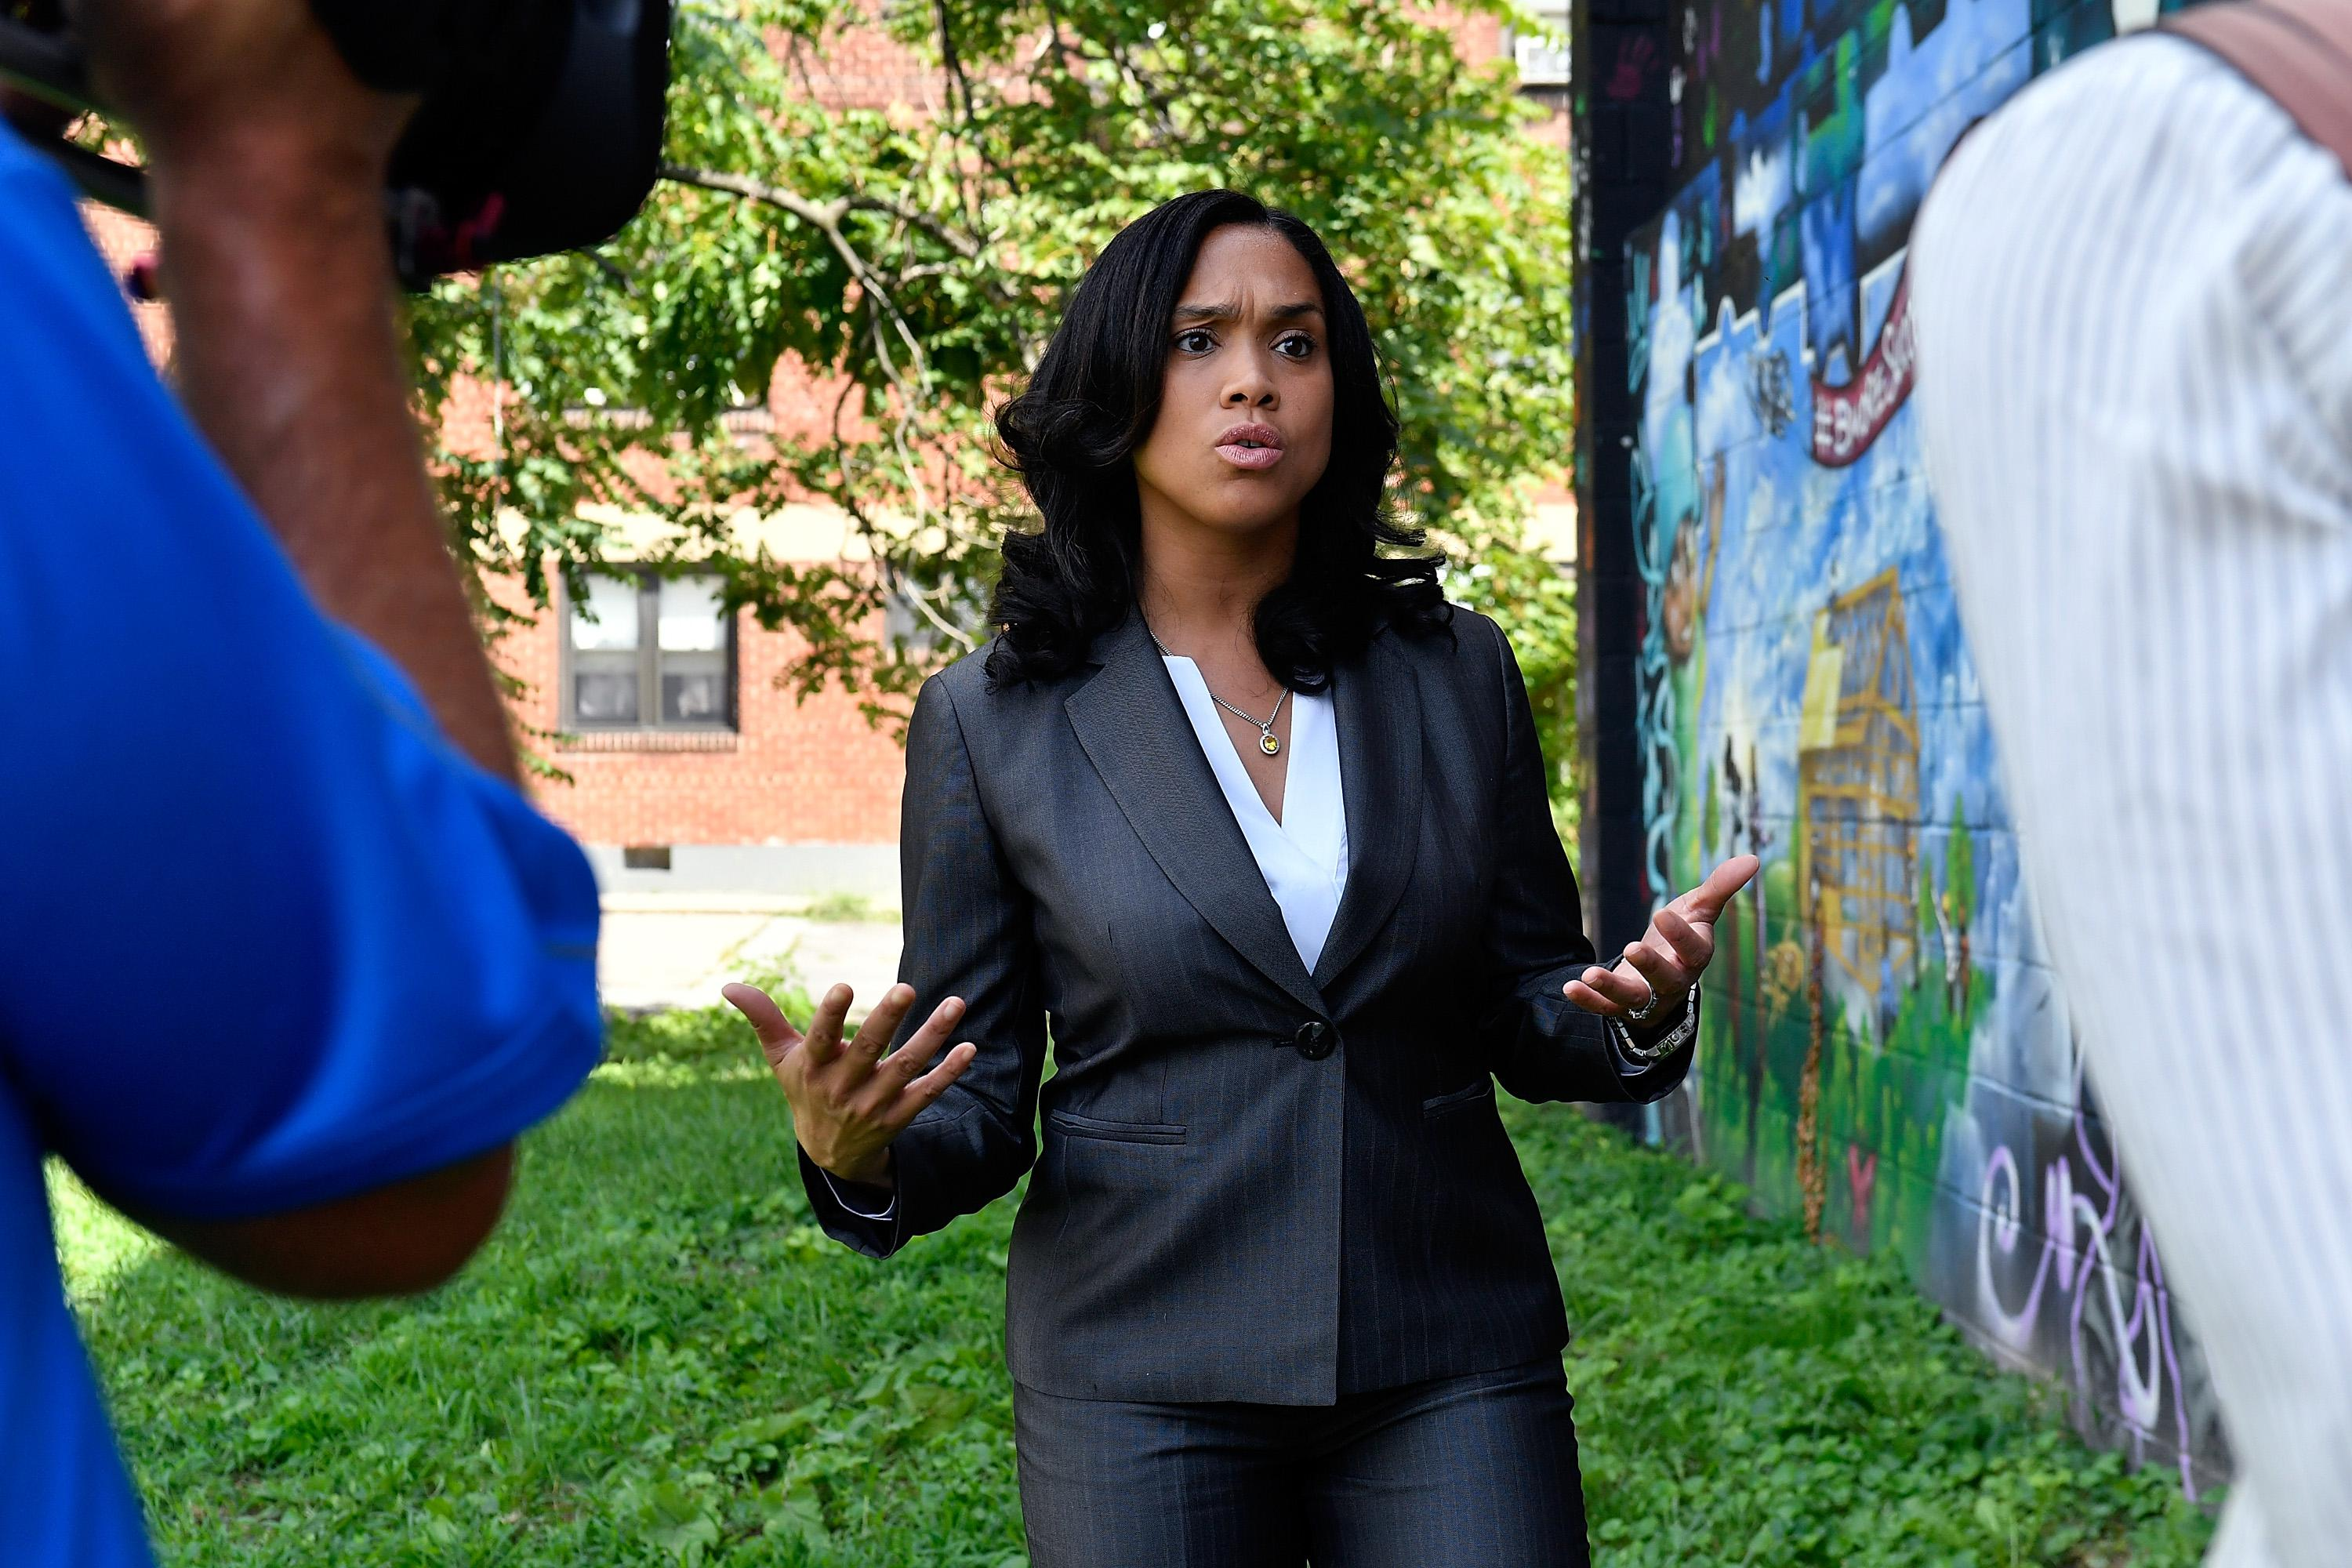 State's Attorney Marilyn Mosby walking through the Sandtown-Winchester neighborhood in Baltimore where Freddie Gray was arrested in 2016.